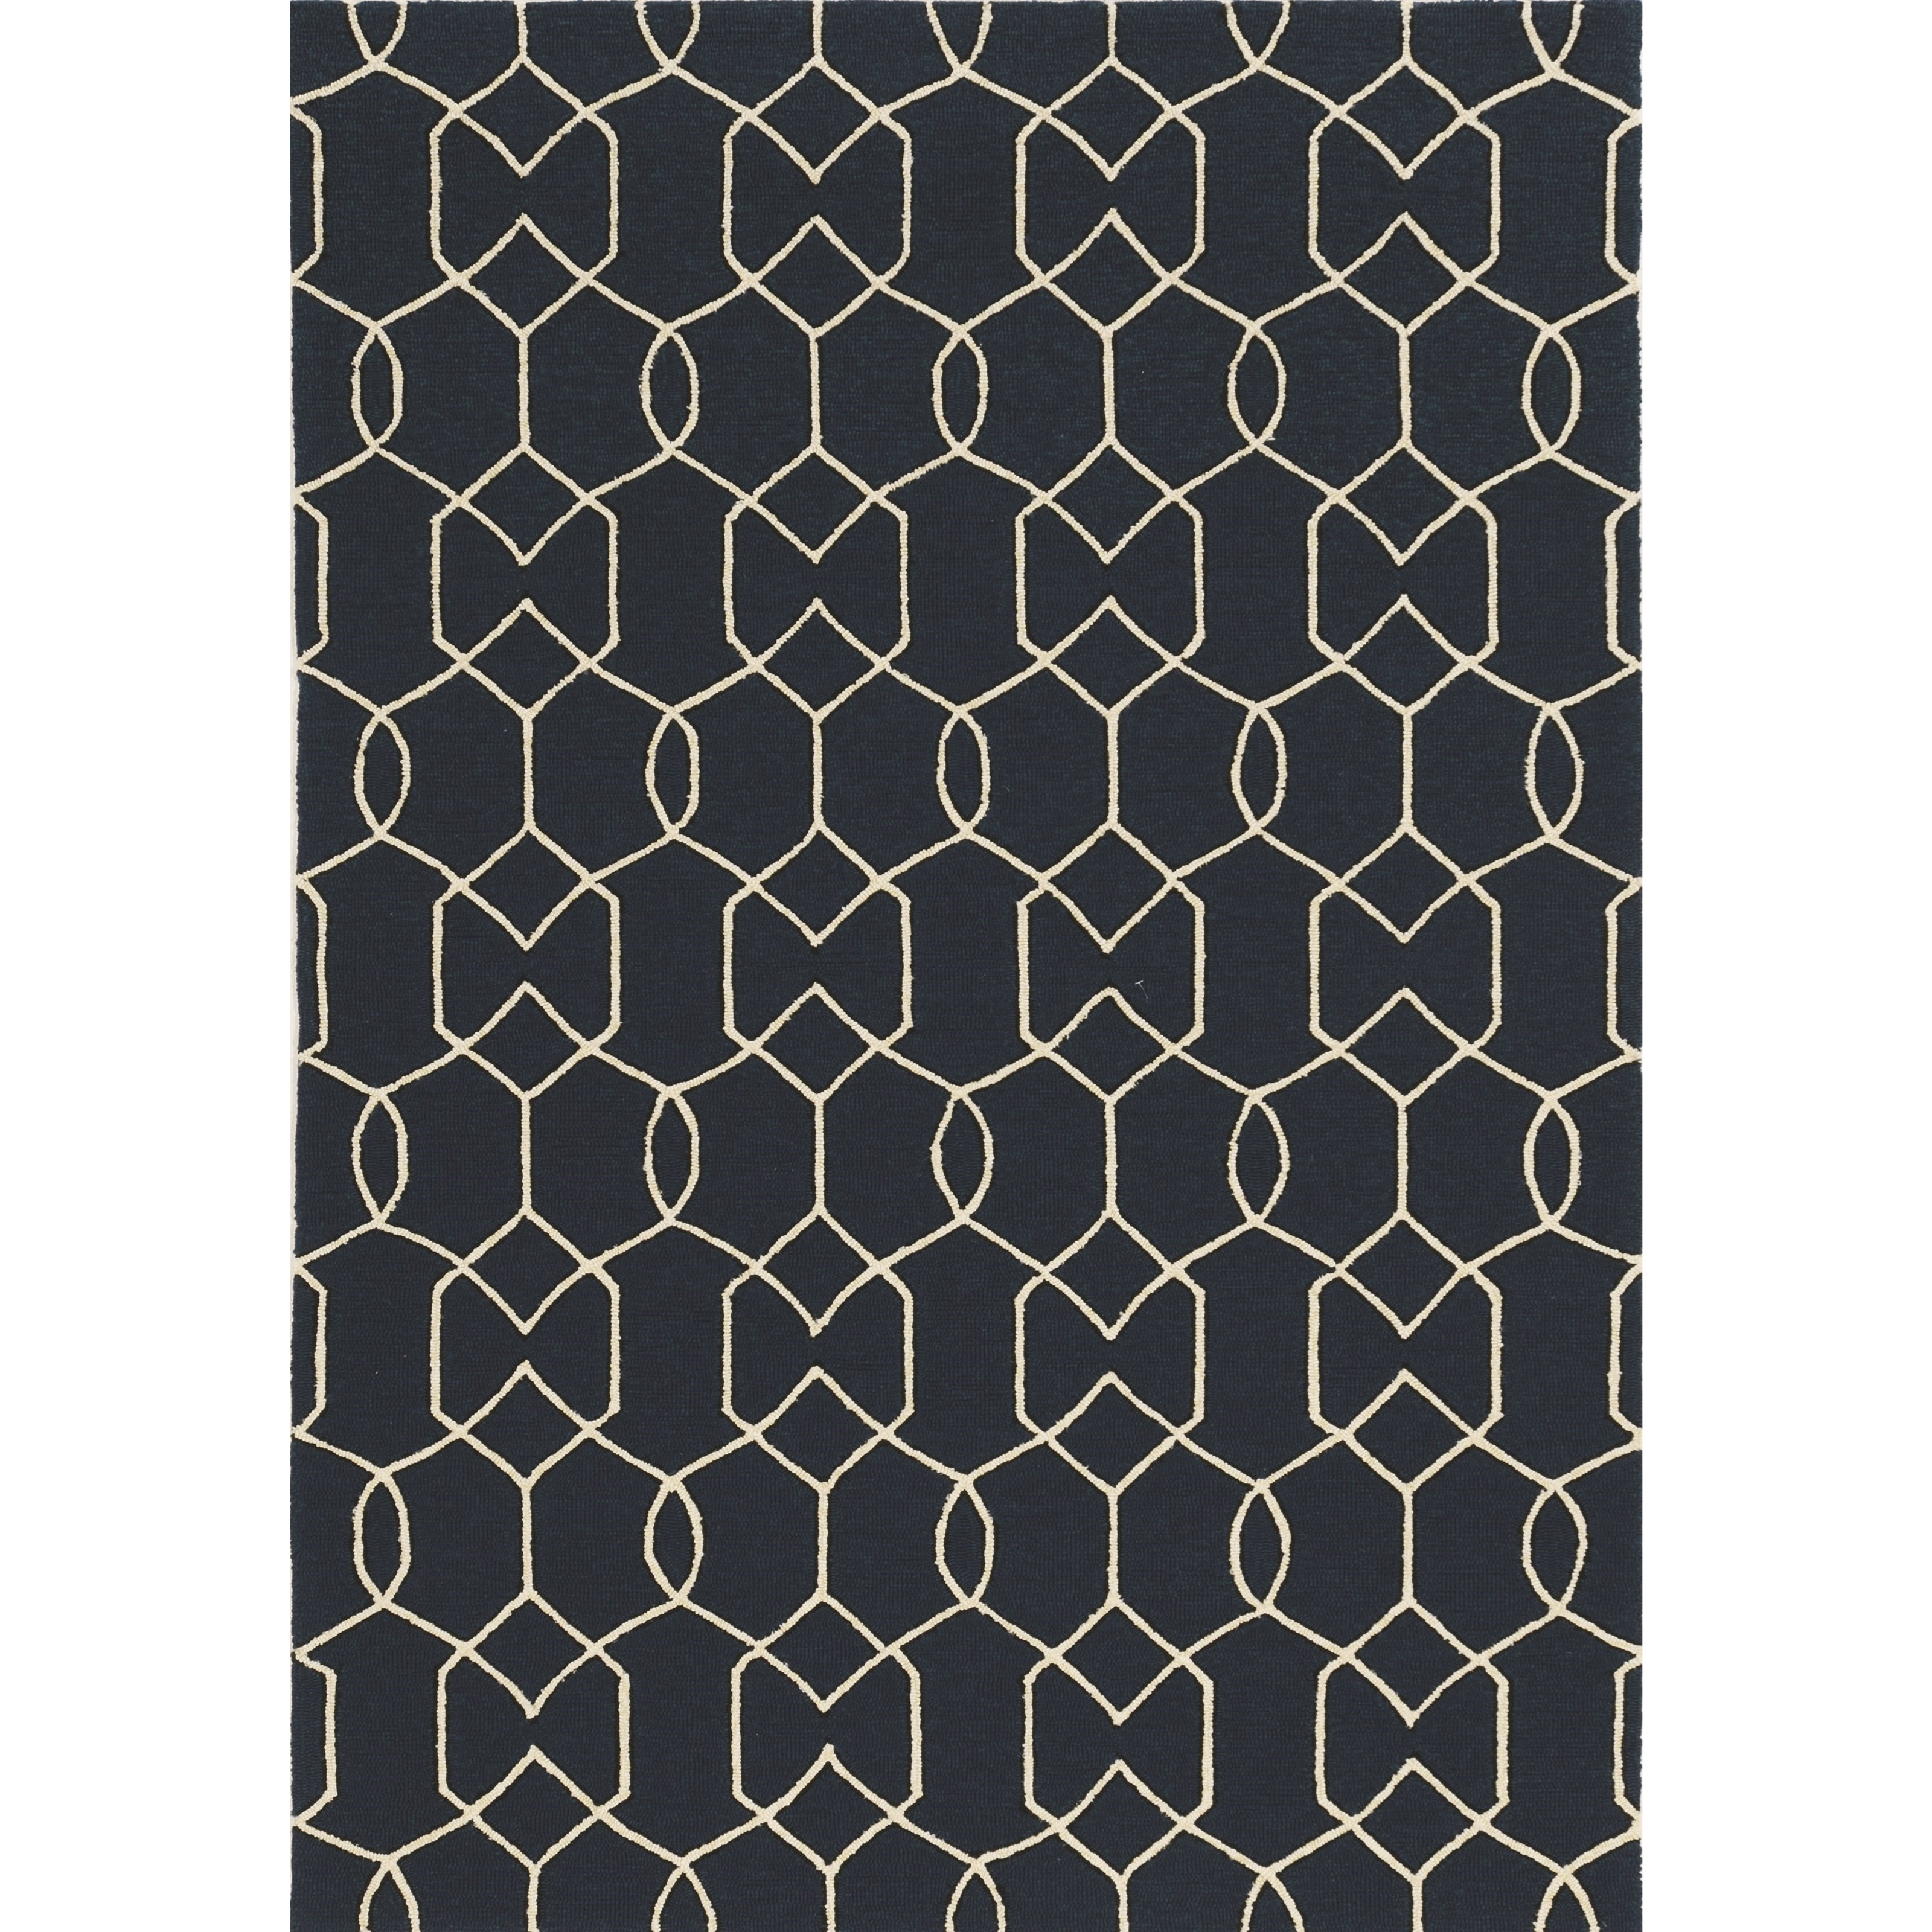 Libby Langdon Hamptons 5' x 7' Navy Groovy Gate Rug by Kas at Zak's Home